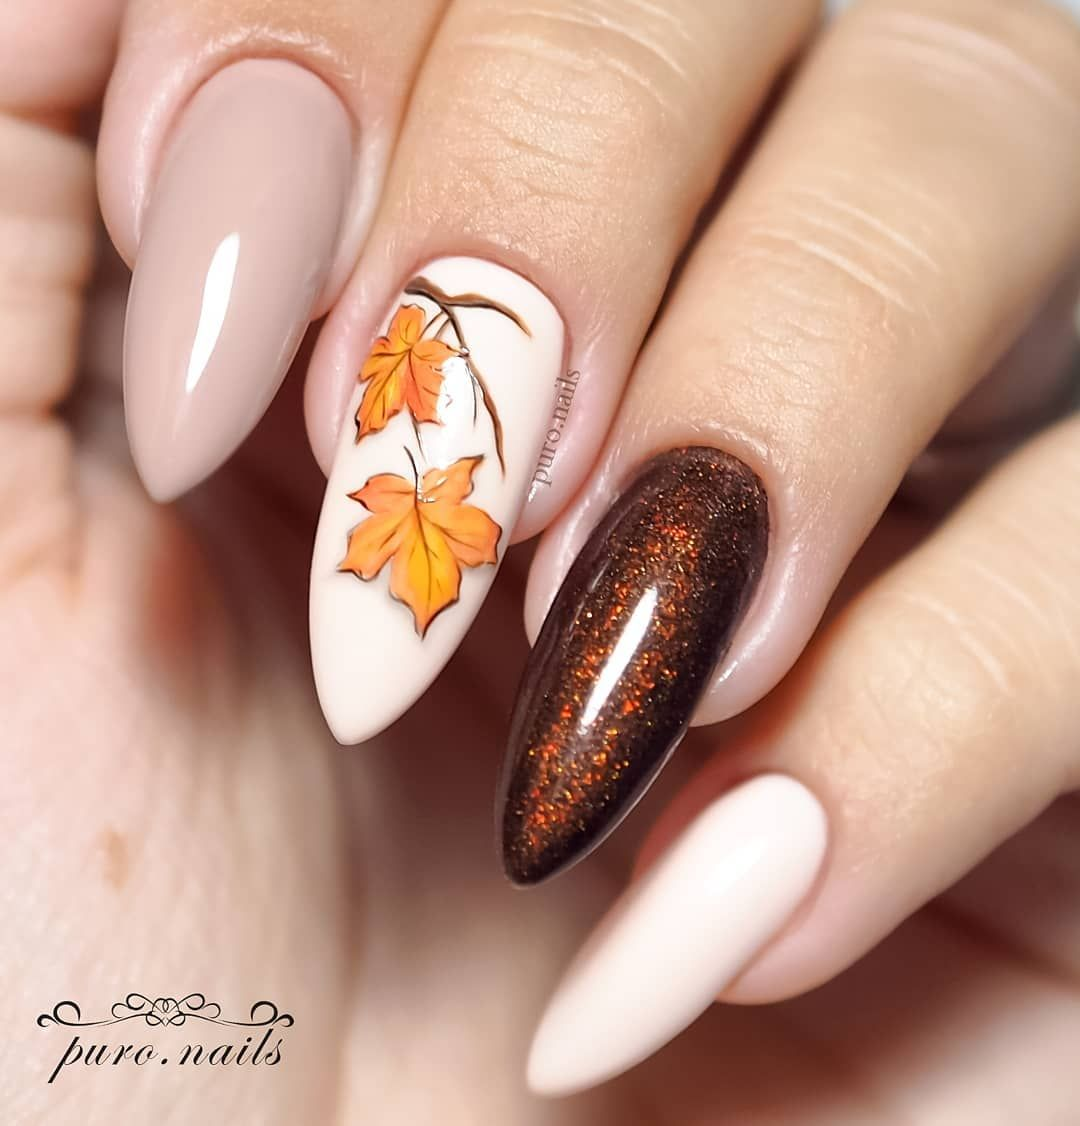 Polubienia 1 278 Komentarze 64 Puro Nails Puro Nails Na Instagramie I Know They Are Not Per Fall Acrylic Nails Color For Nails Fall Nail Art Designs